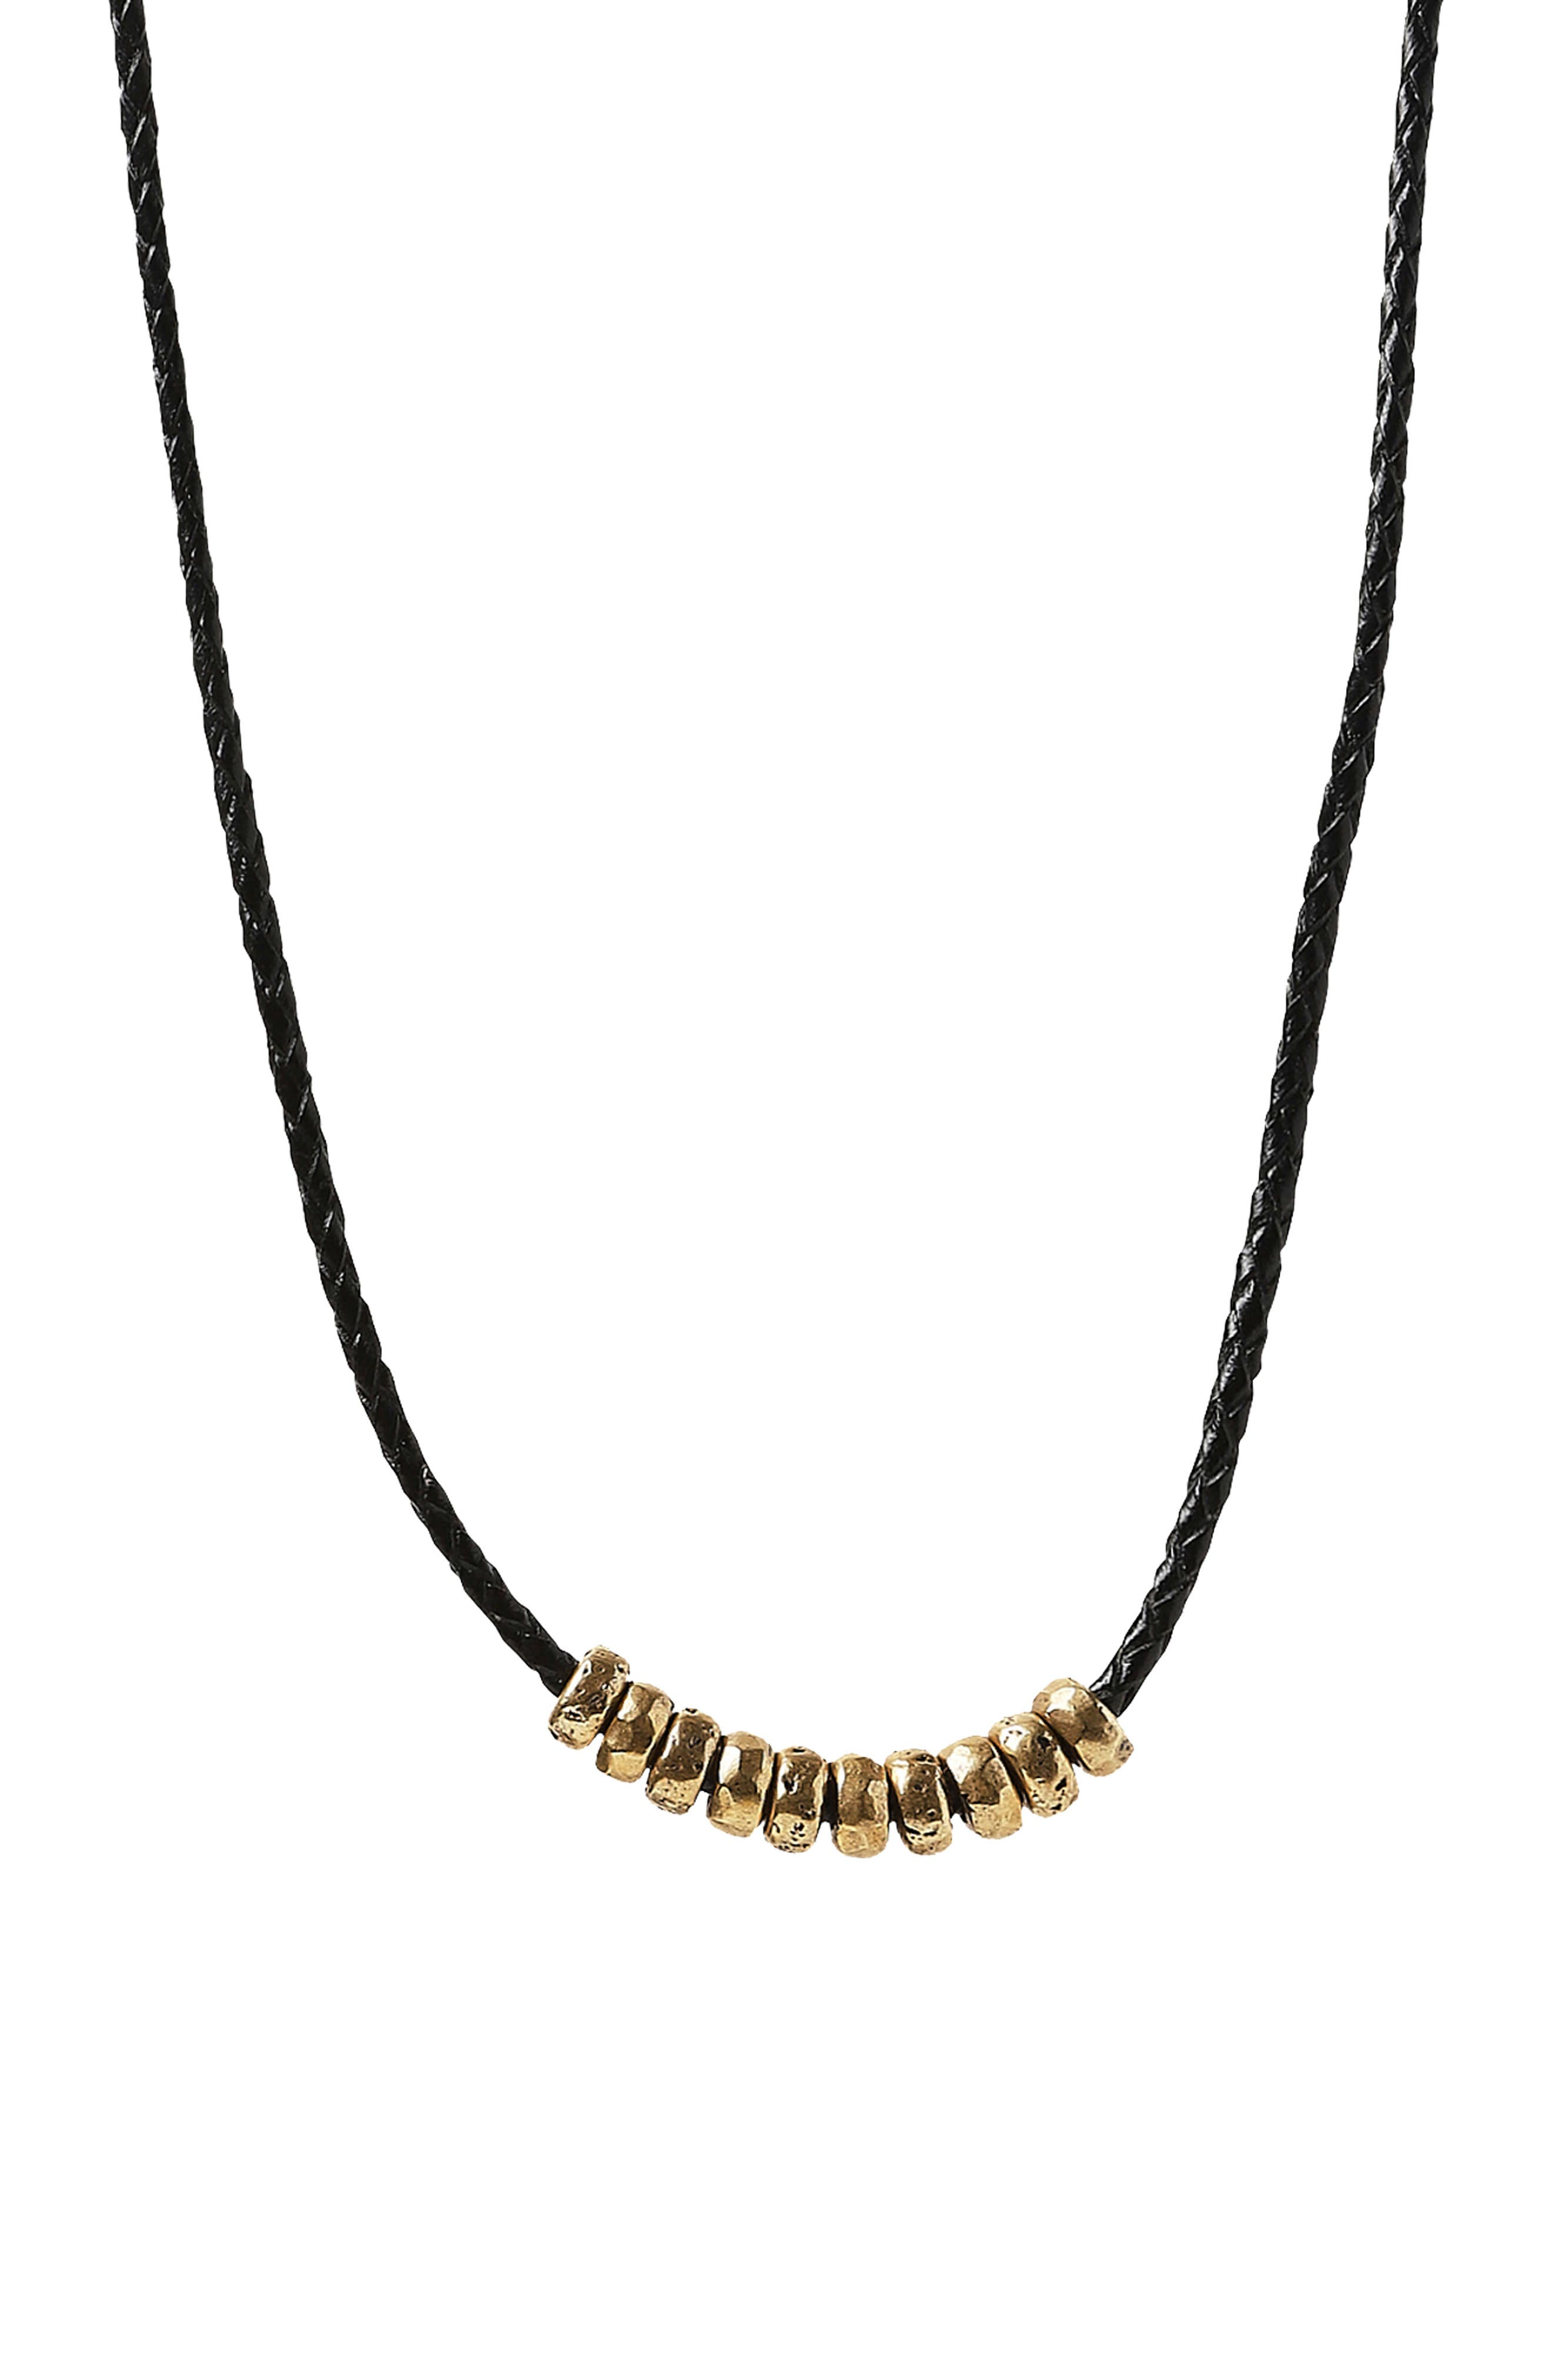 Frontal Bead & Braided Leather Necklace